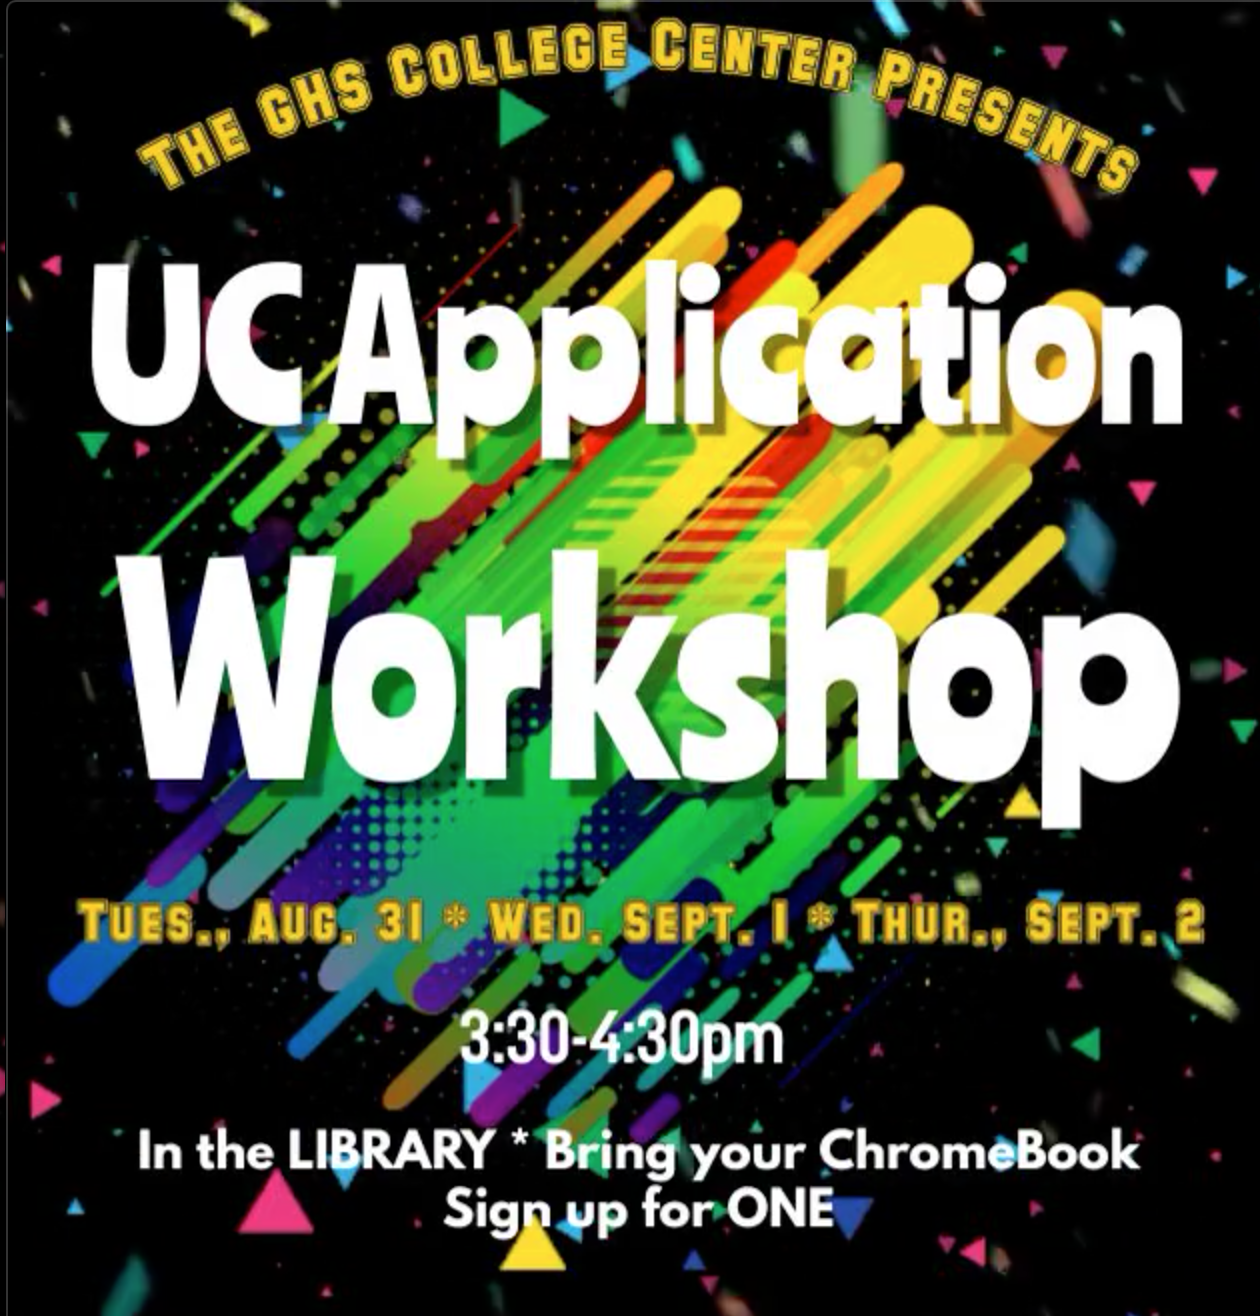 UC Application Workshop 8/31-9/2 from 3:30-4:30pm in the LIBRARY